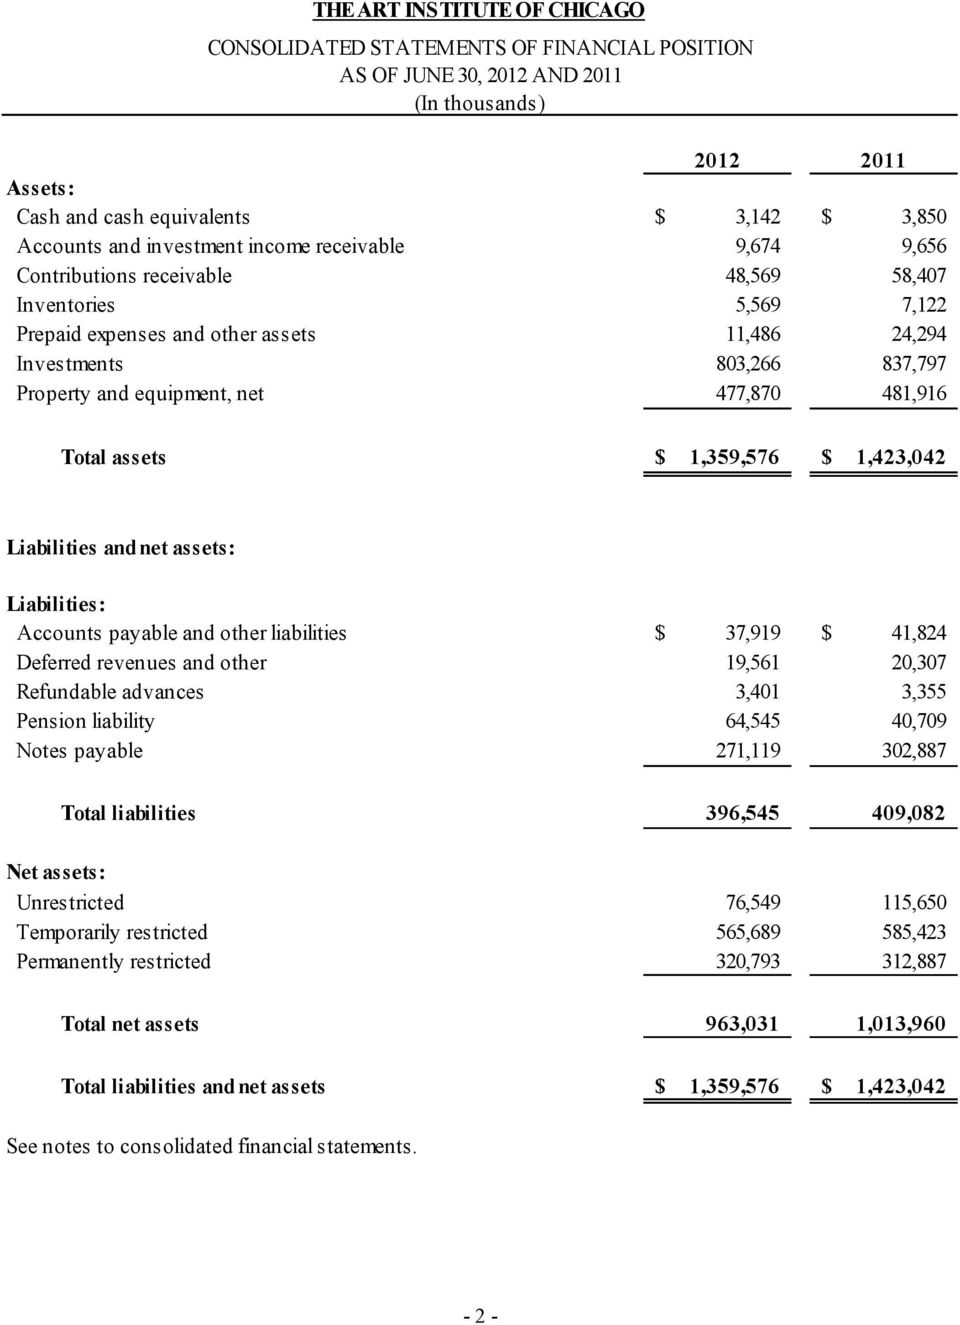 equipment, net 477,870 481,916 Total assets $ 1,359,576 $ 1,423,042 Liabilities and net assets: Liabilities: Accounts payable and other liabilities $ 37,919 $ 41,824 Deferred revenues and other